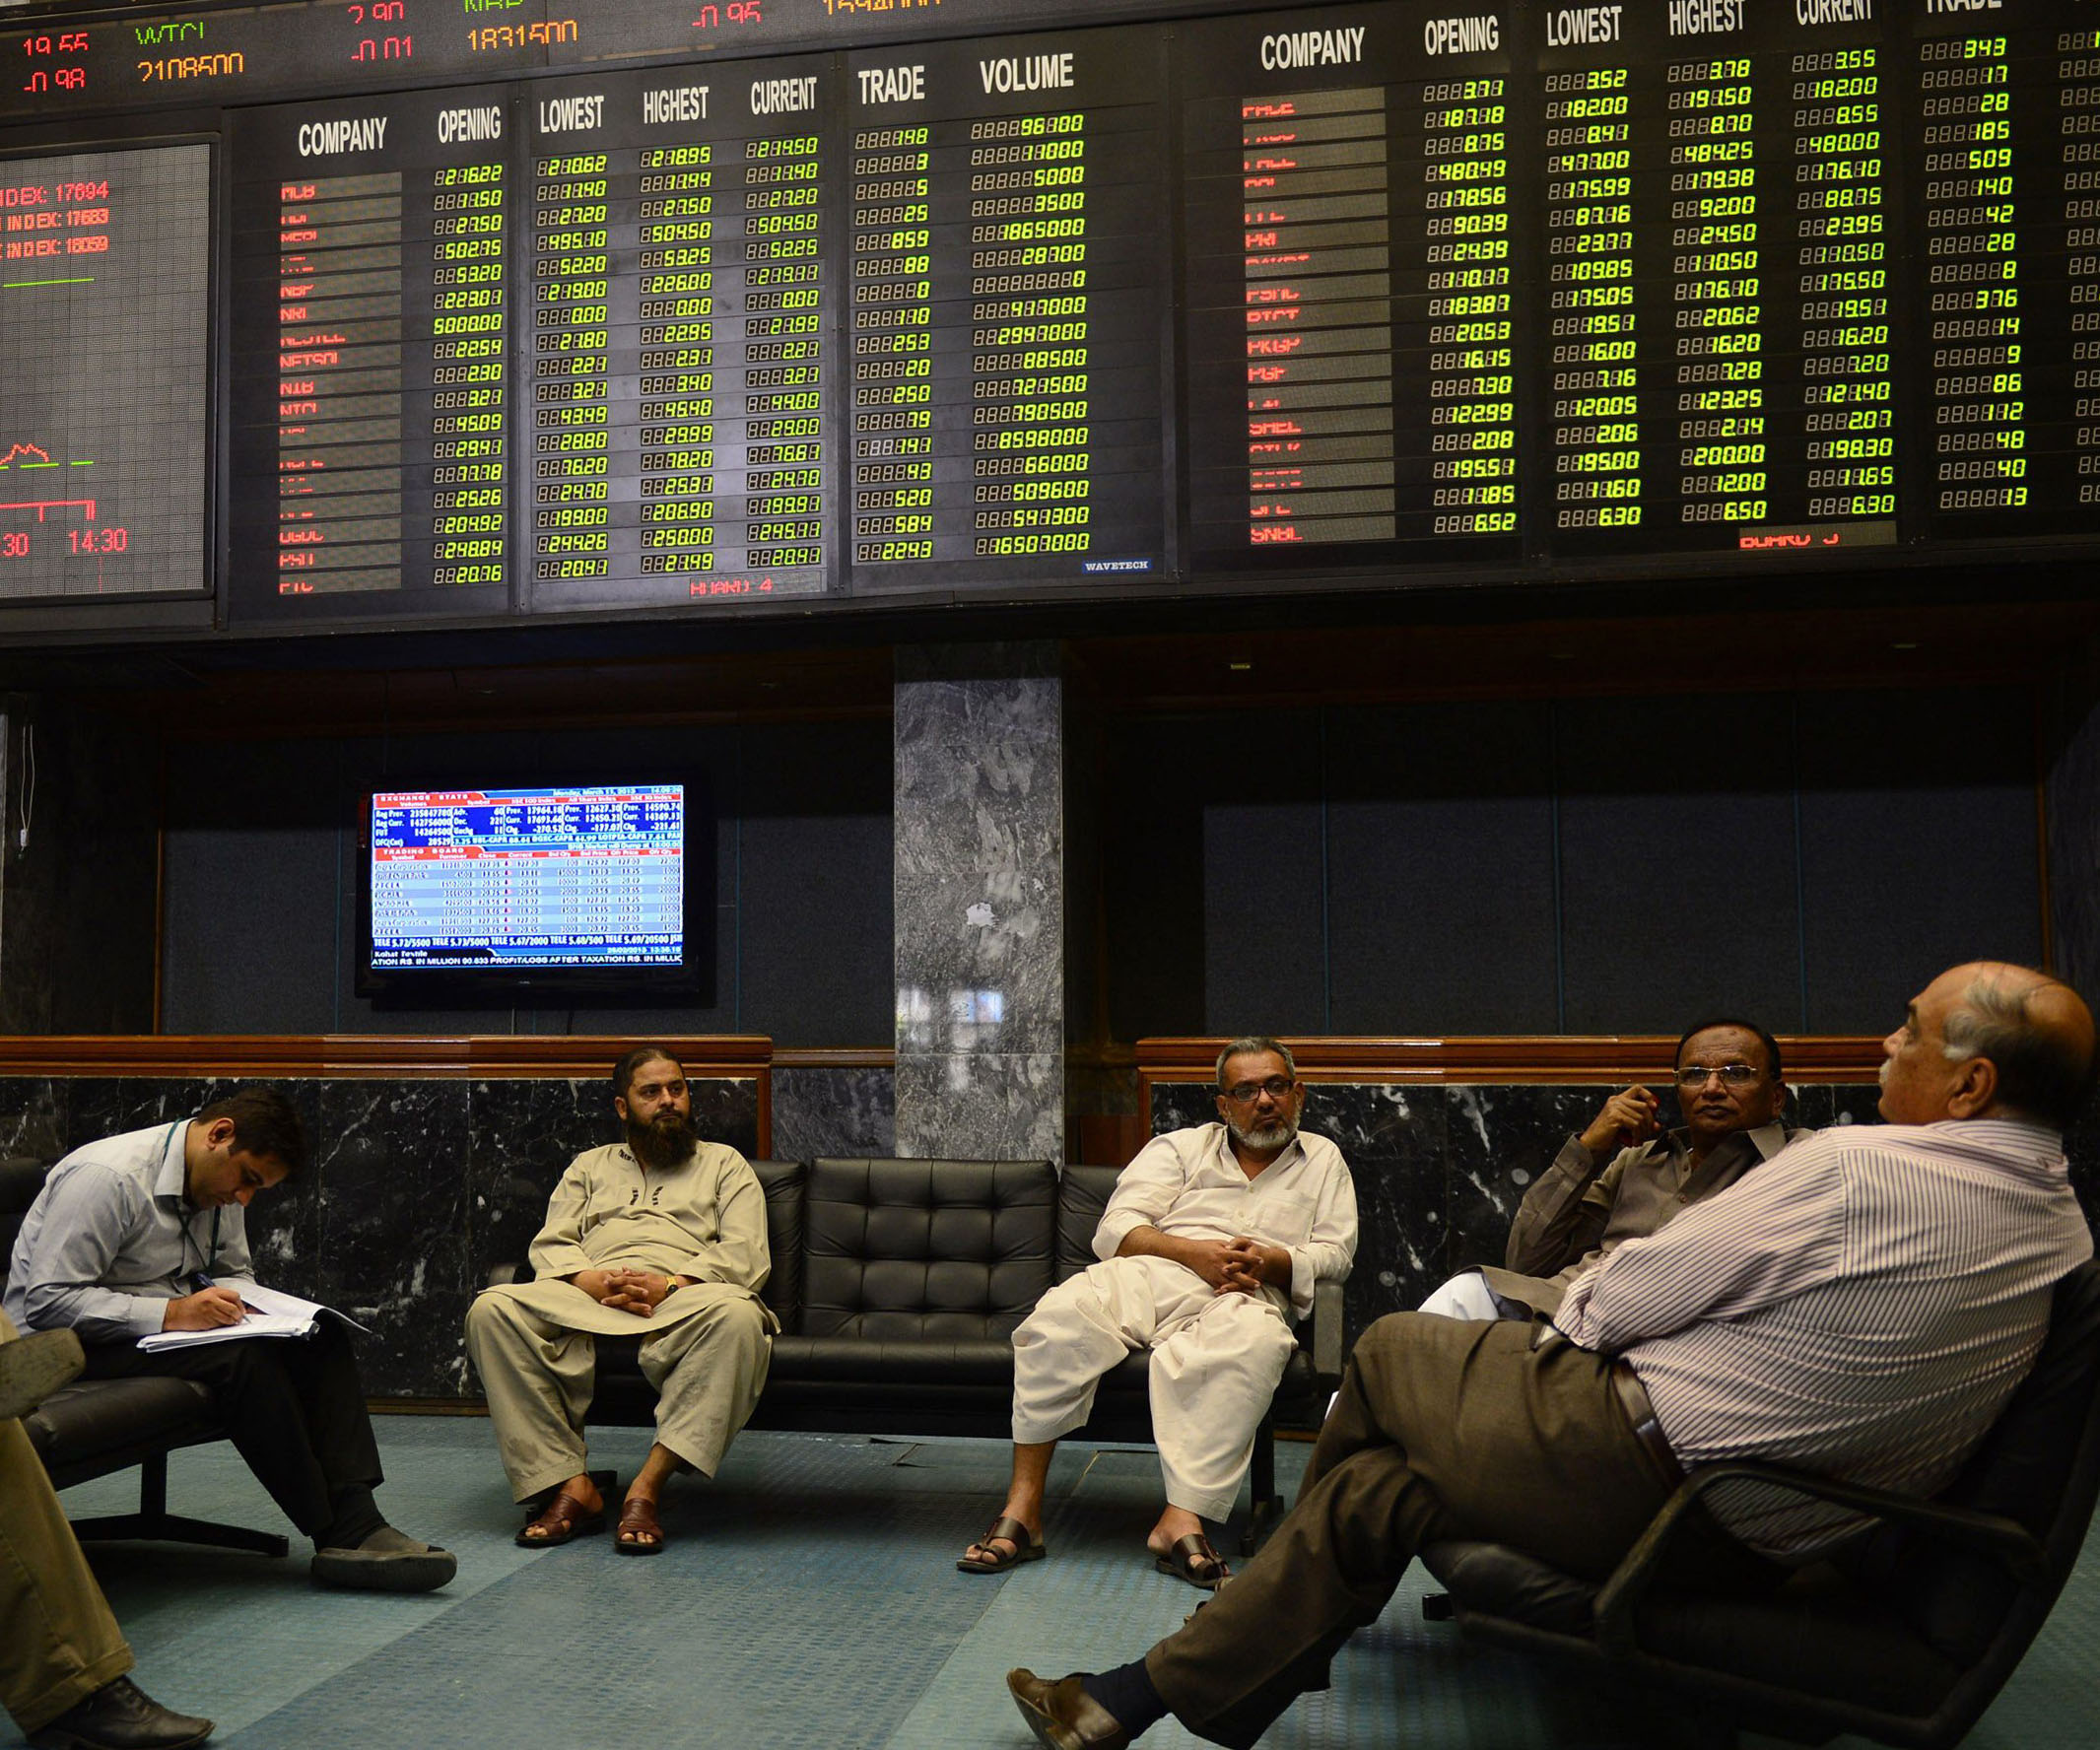 Benchmark index decreases 0.28% to close at 43,705.10. PHOTO: AFP